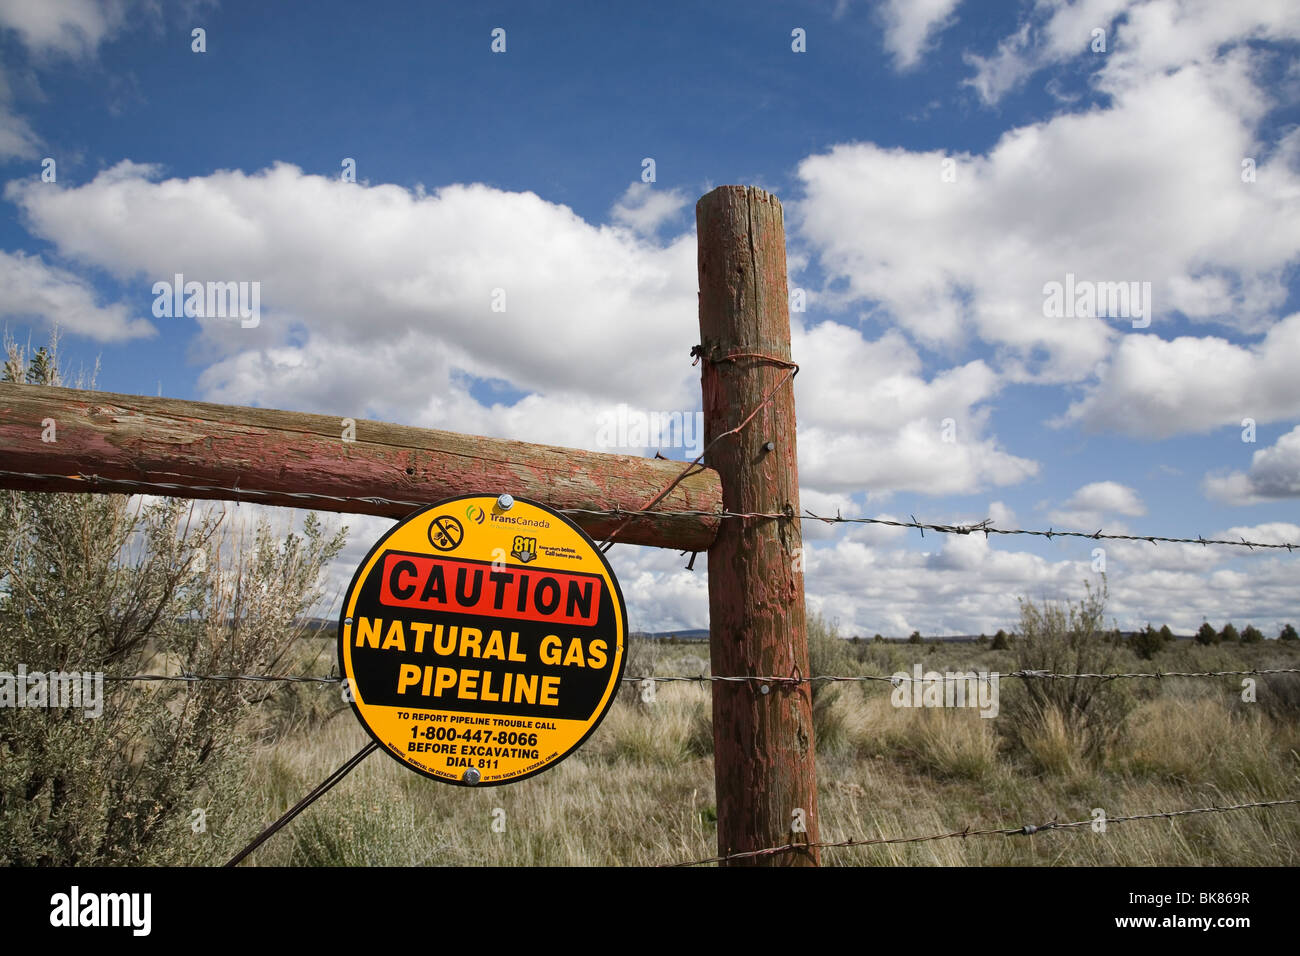 A caution sign on a barbed wire fence warns visitors about a Trans Canada Natural gas pipeline buried nearby, near Stock Photo